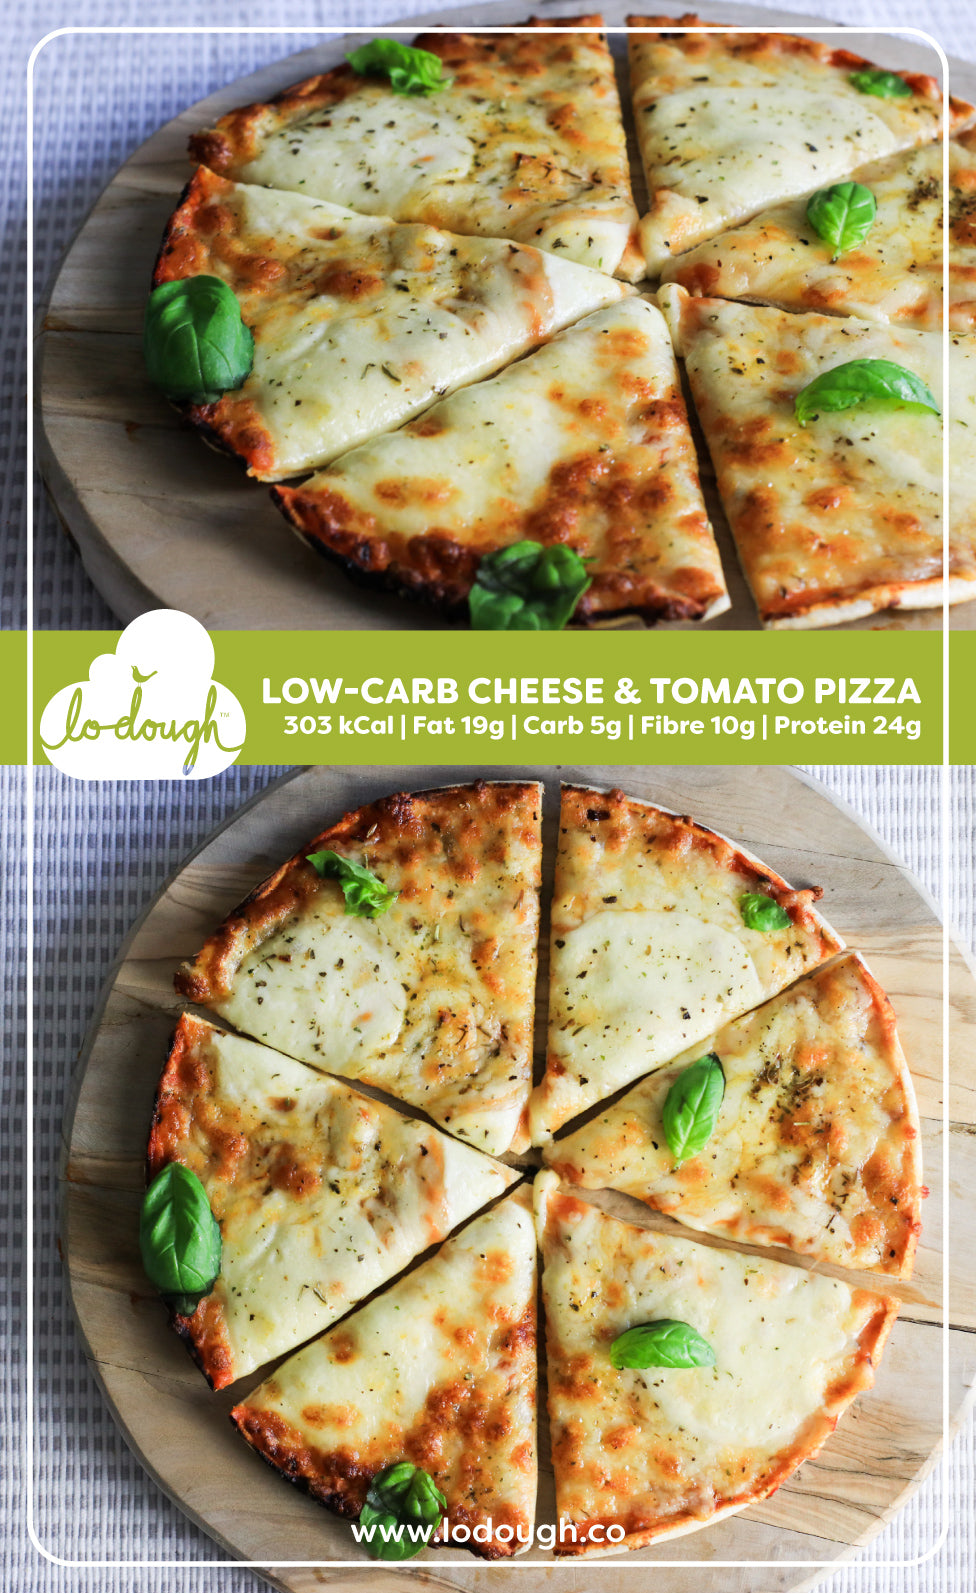 Low-Carb Cheese & Tomato Pizza